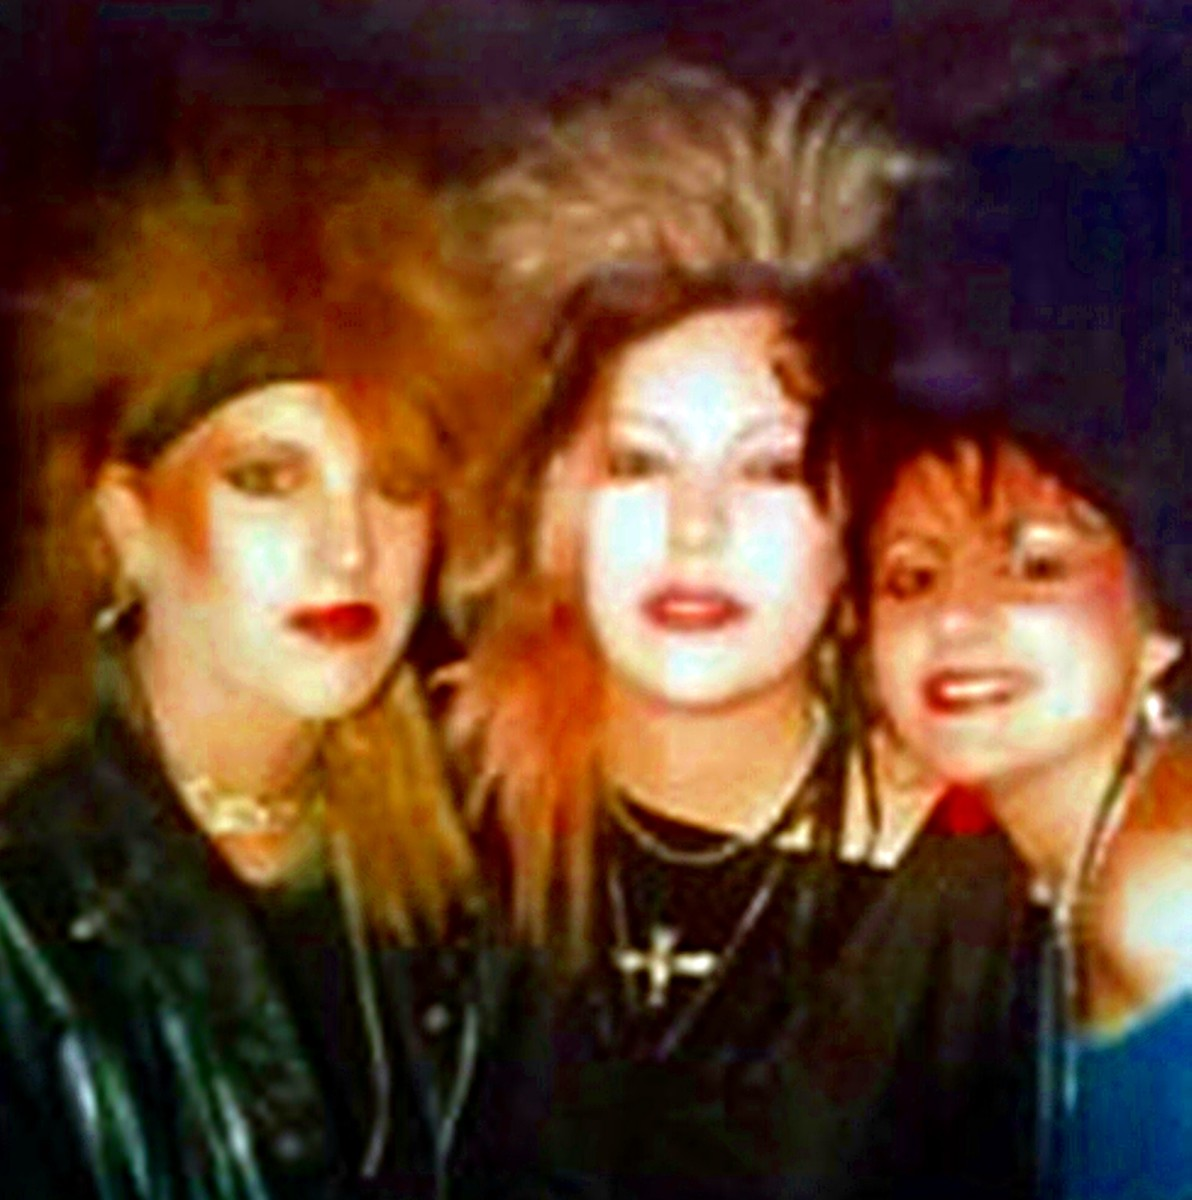 Pictured (from left) are Mitch, me and Sally, all with our hair extensions. Mine were pink and black at the time.